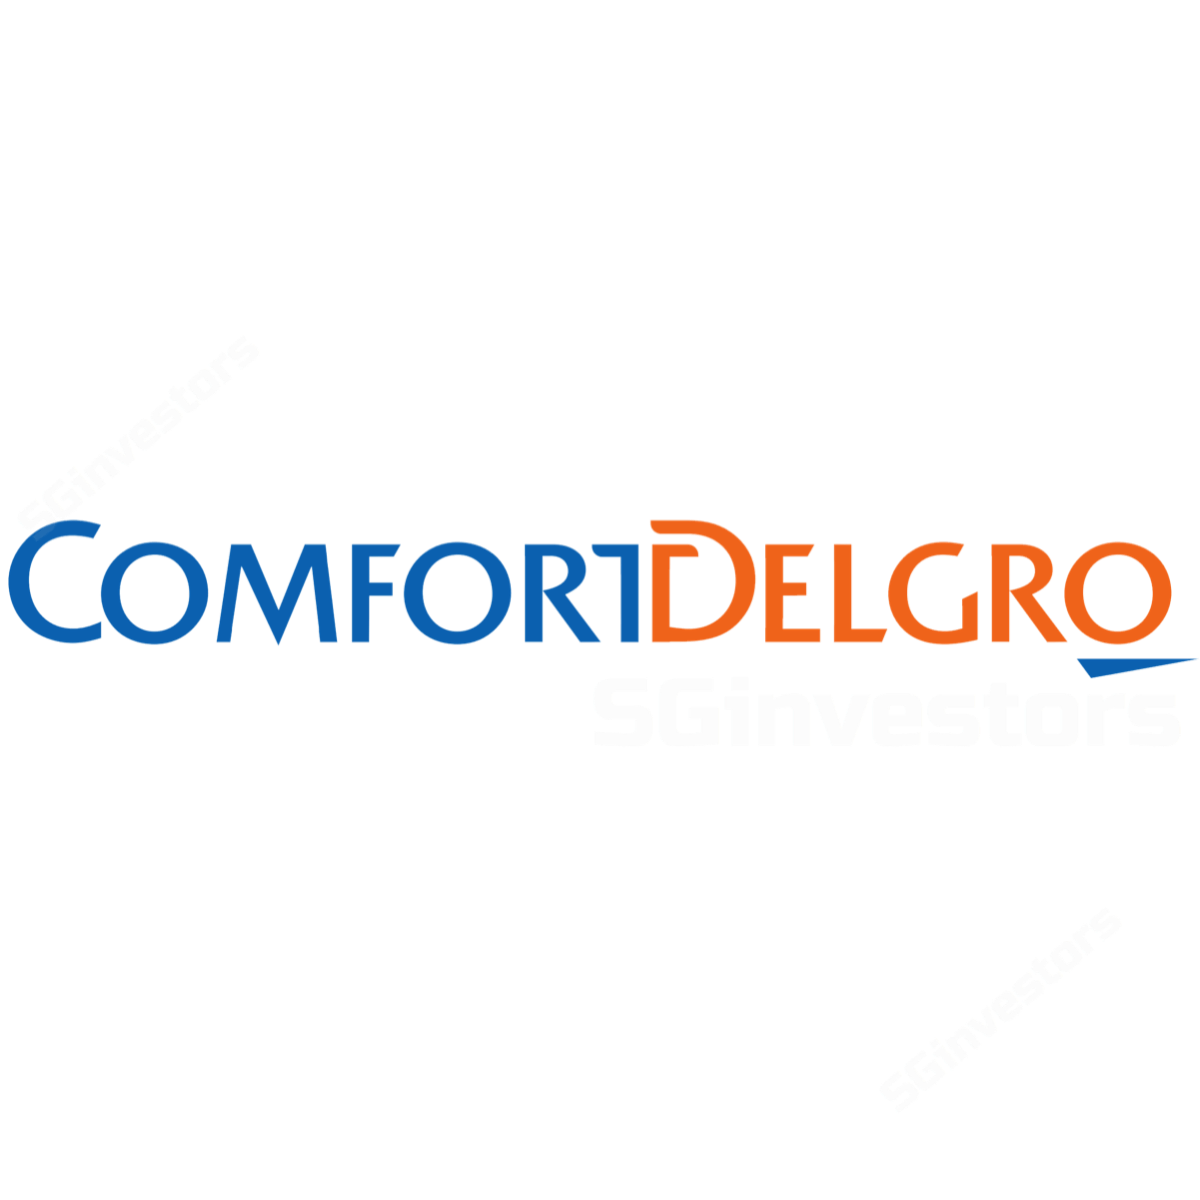 ComfortDelGro Corporation - RHB Invest 2017-05-12: Singapore Public Transport To Support Growth